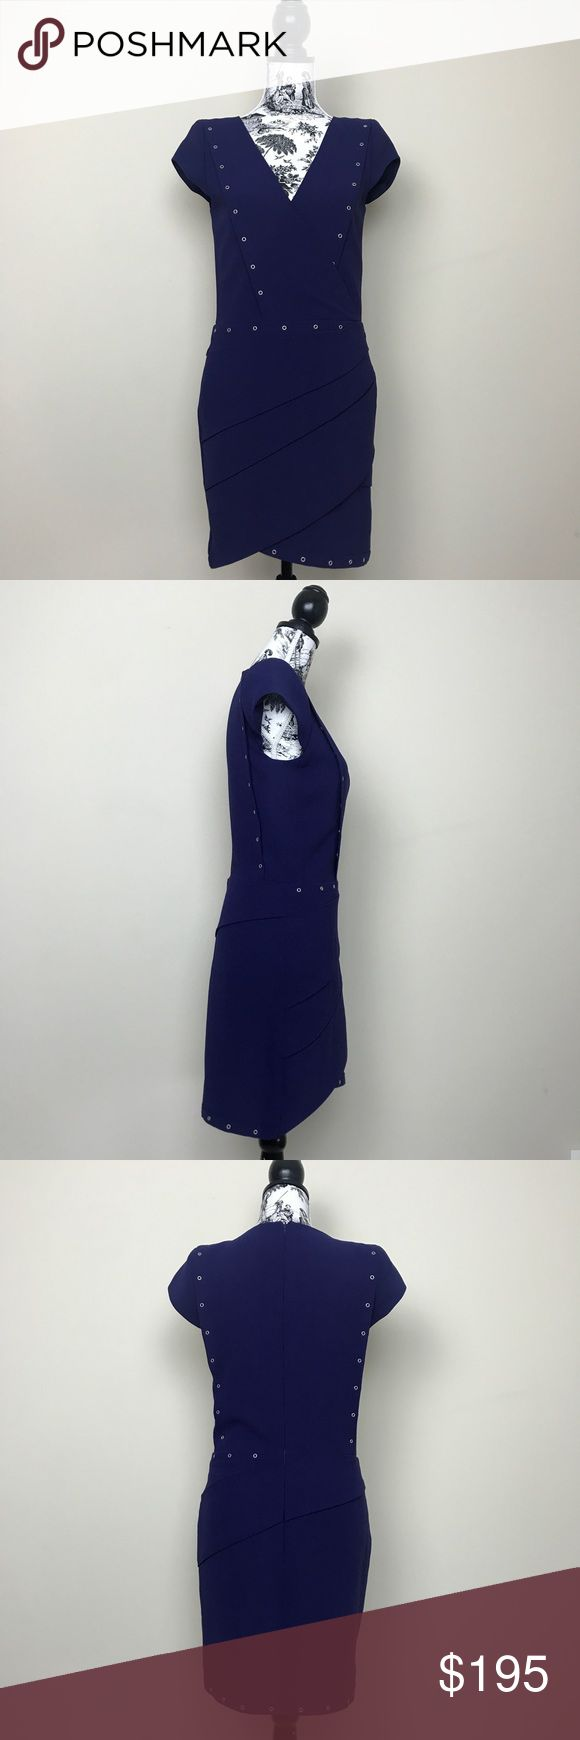 """NWOT THE KOOPLES Crepe Grommet Dress in Eggplant THE KOOPLES Crepe Grommet Dress. Short cap sleeves with faux wrap style. Silver grommet hardware detailing. V-neckline. Fully lined. Concealed back zipper. Light shoulder padding. 100% polyester. Dry clean. Length measures 35"""", bust 17"""", and waist measures 15"""" flat. The Kooples Dresses Mini"""